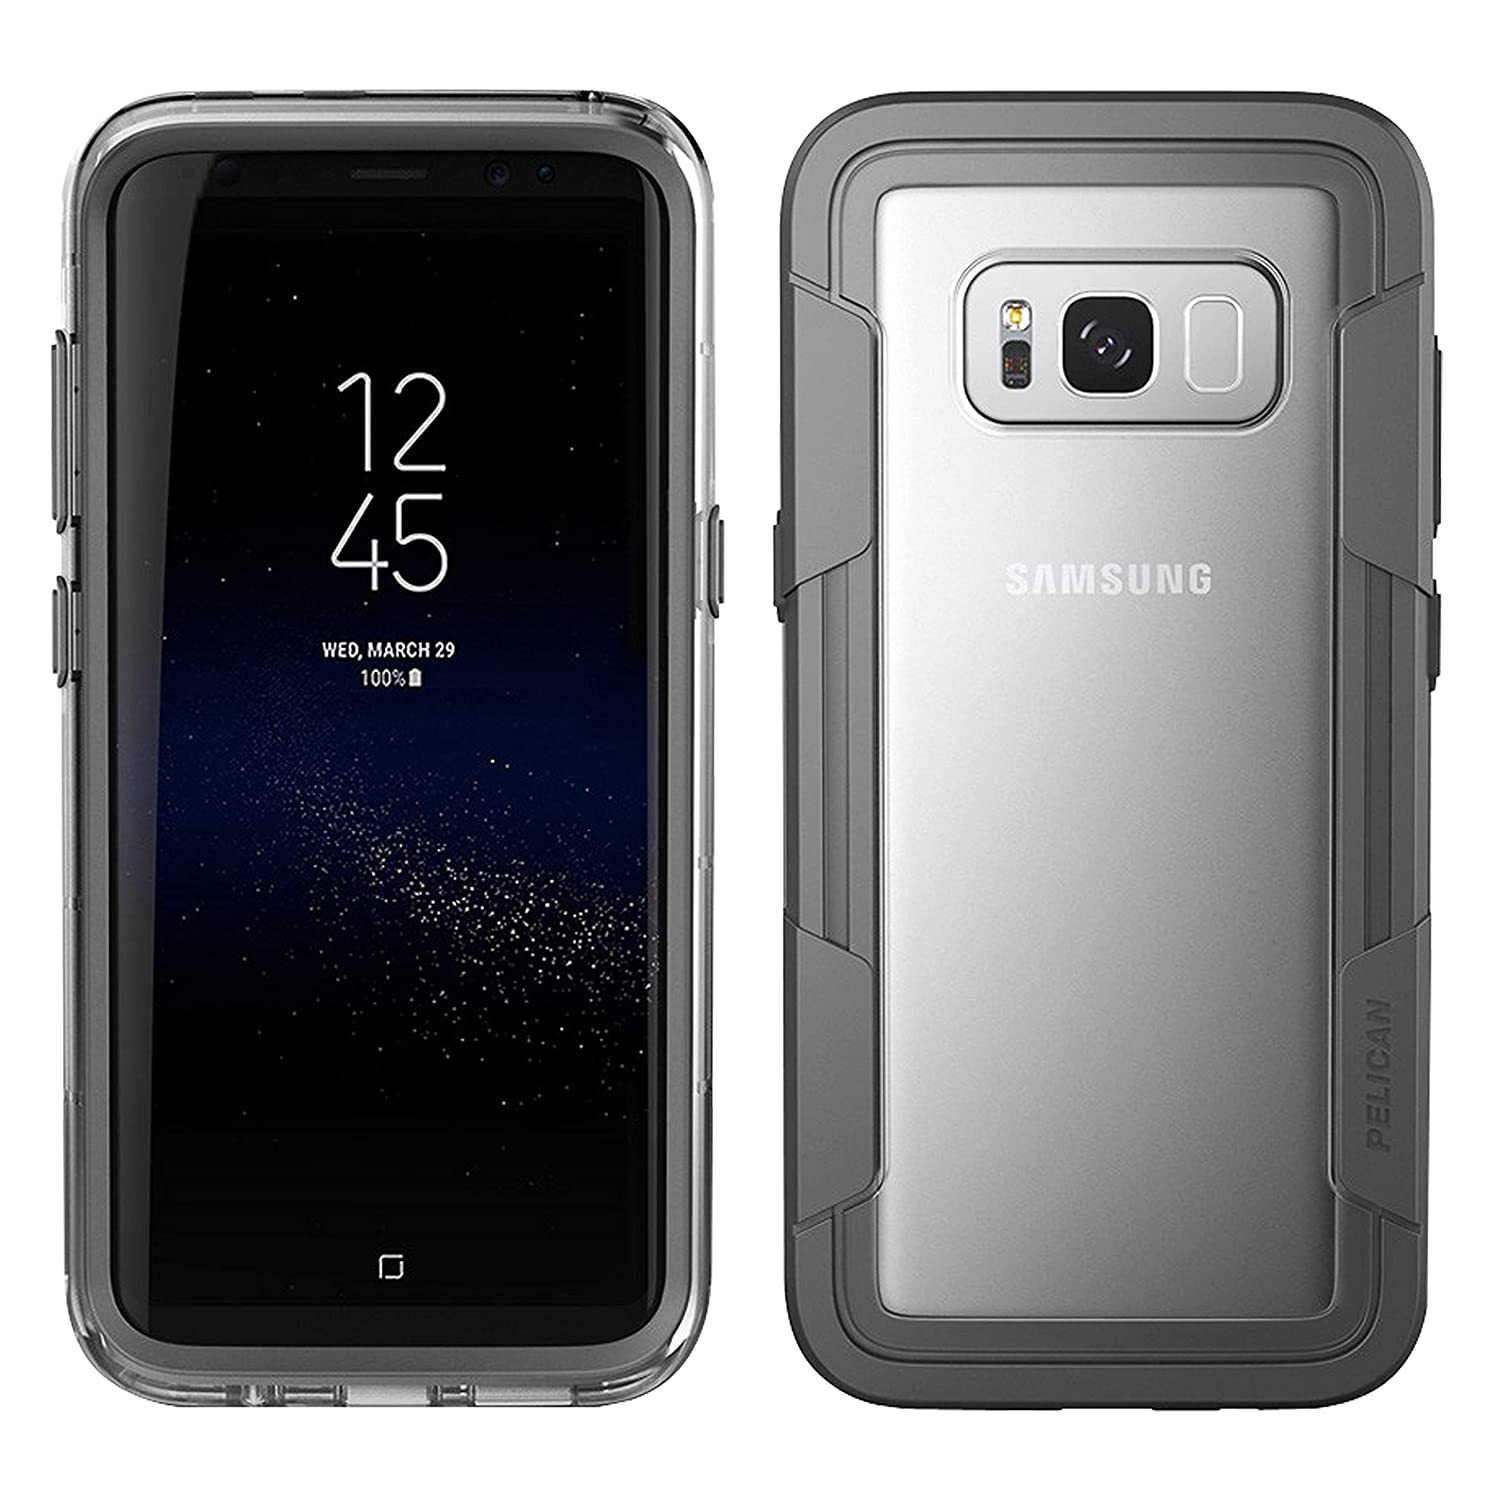 huge selection of 0d3a7 3243f Pelican Voyager Samsung Galaxy S8 Active Case (Black): Amazon.ca ...